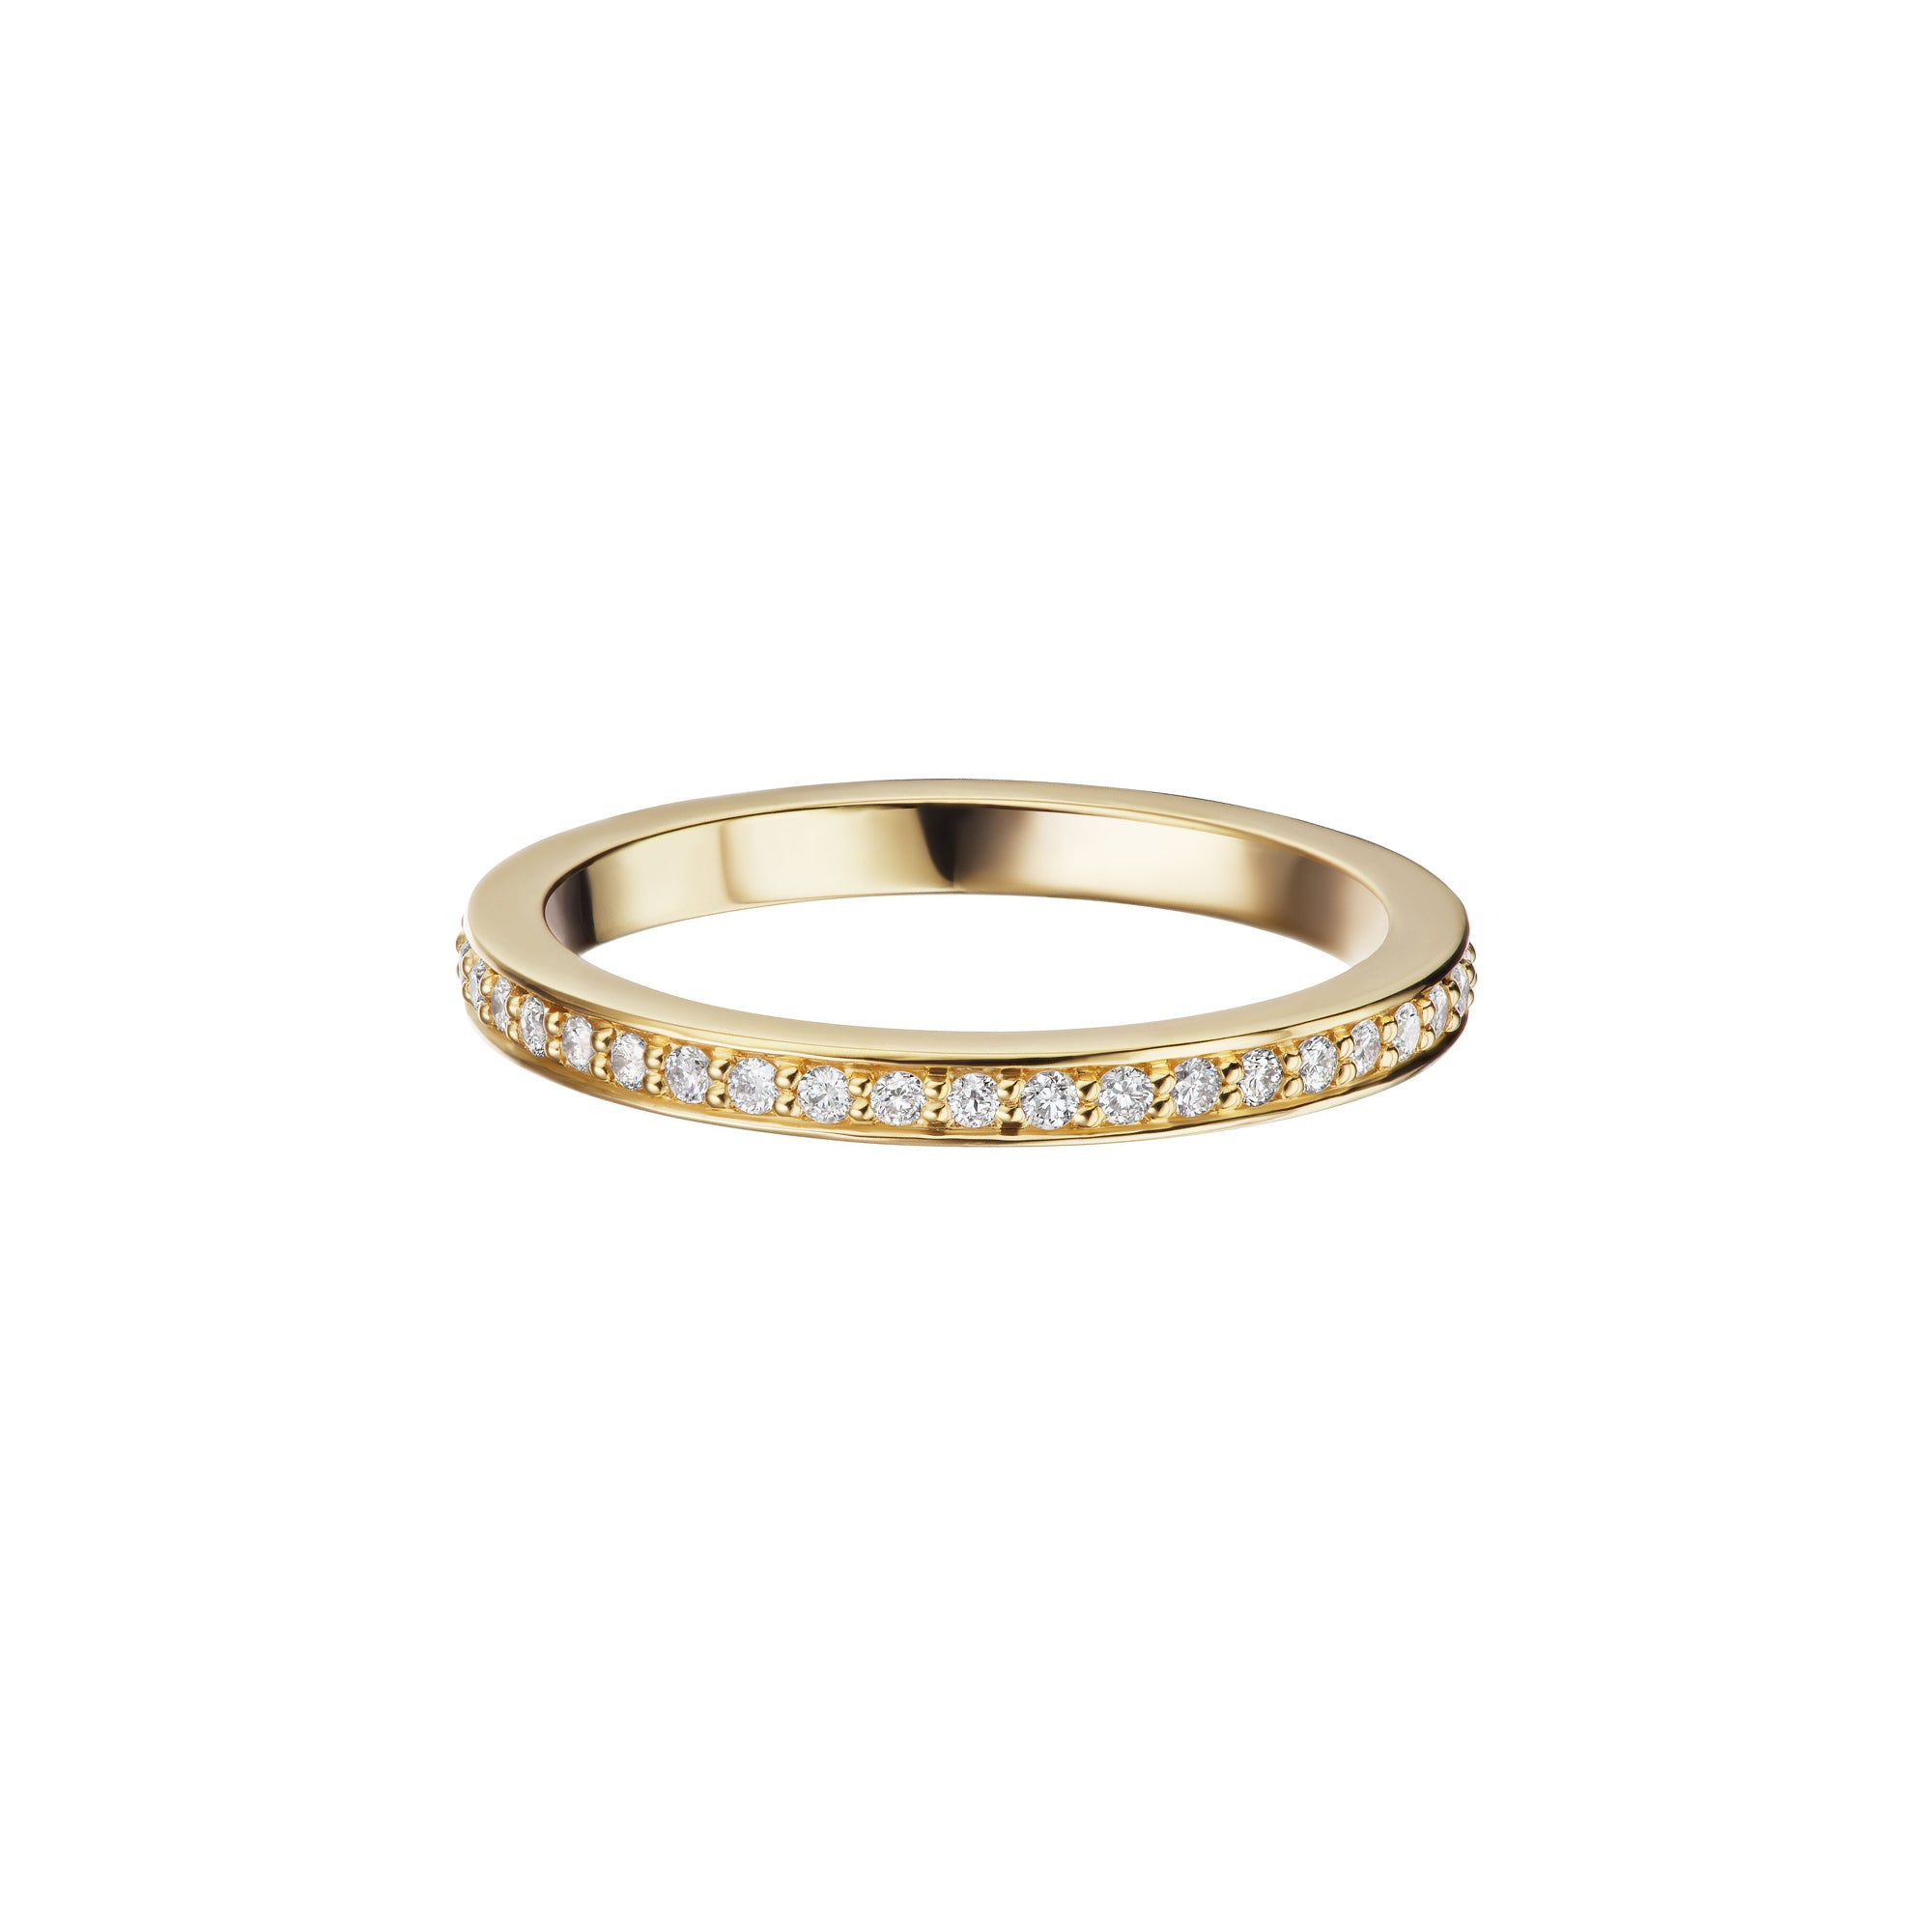 Altruist Paramour Ring - Gold - Rings - Broken English Jewelry